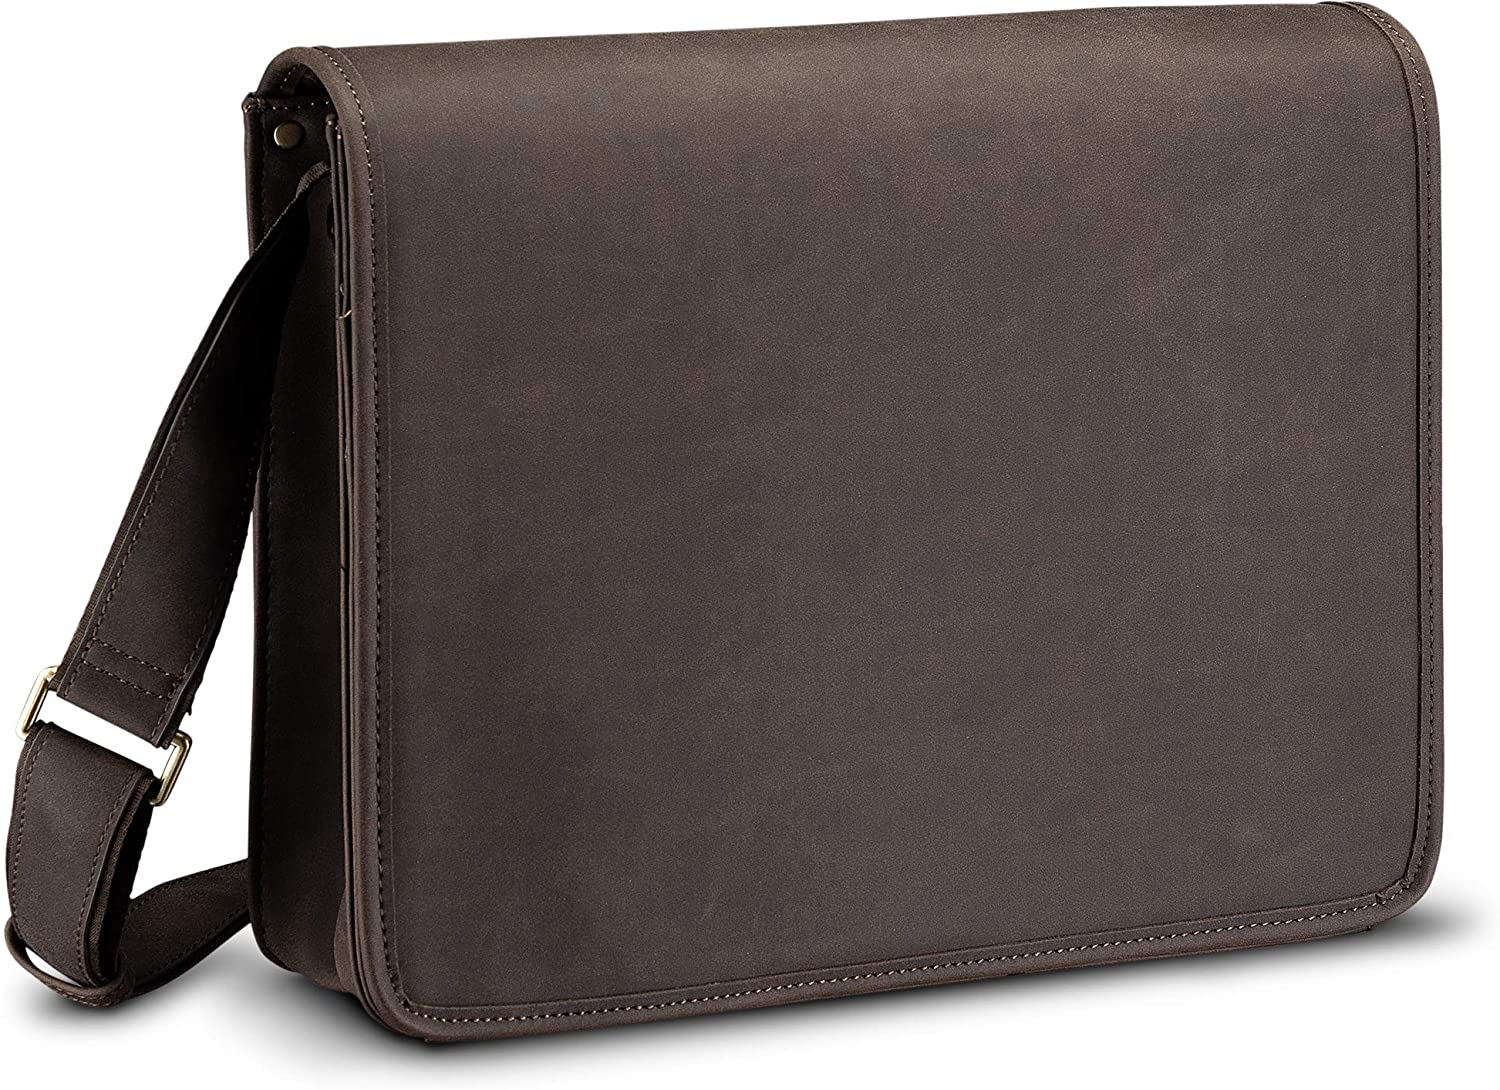 Full Flap Messenger Laptop Bag, Distressed PU Leather for 13.3 Inch Laptop, MacBook, or Tablet (Brown)